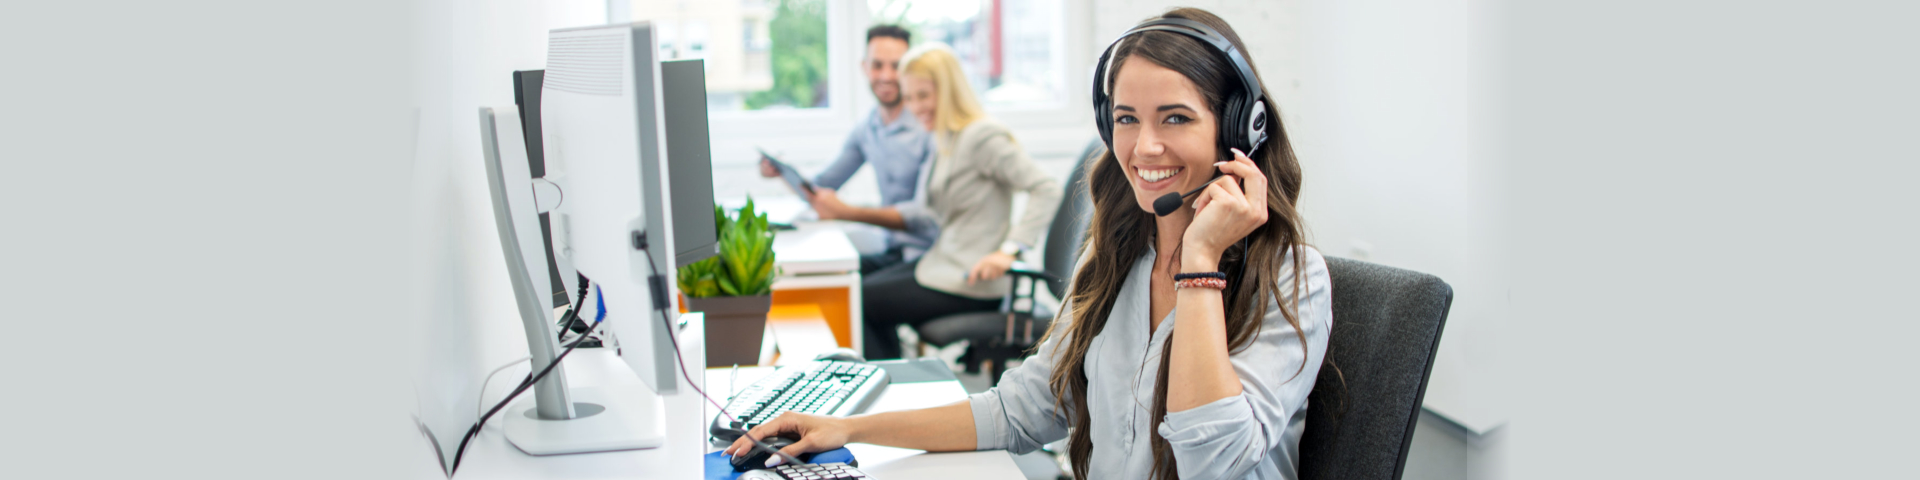 Smiling friendly female call-center agent with headset